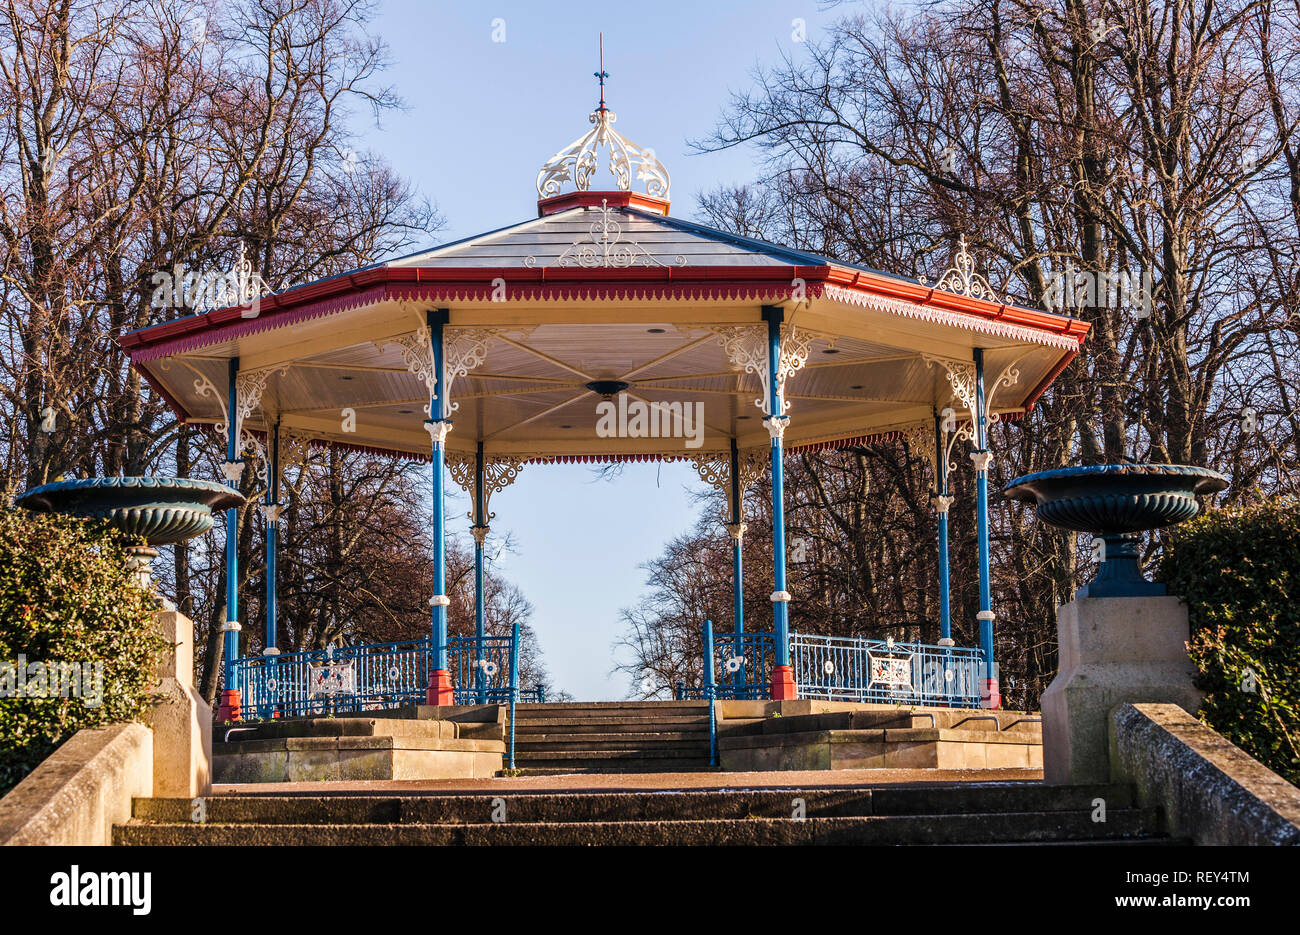 The bandstand at Ropner Park, Stockton on Tees, England, UK Stock Photo